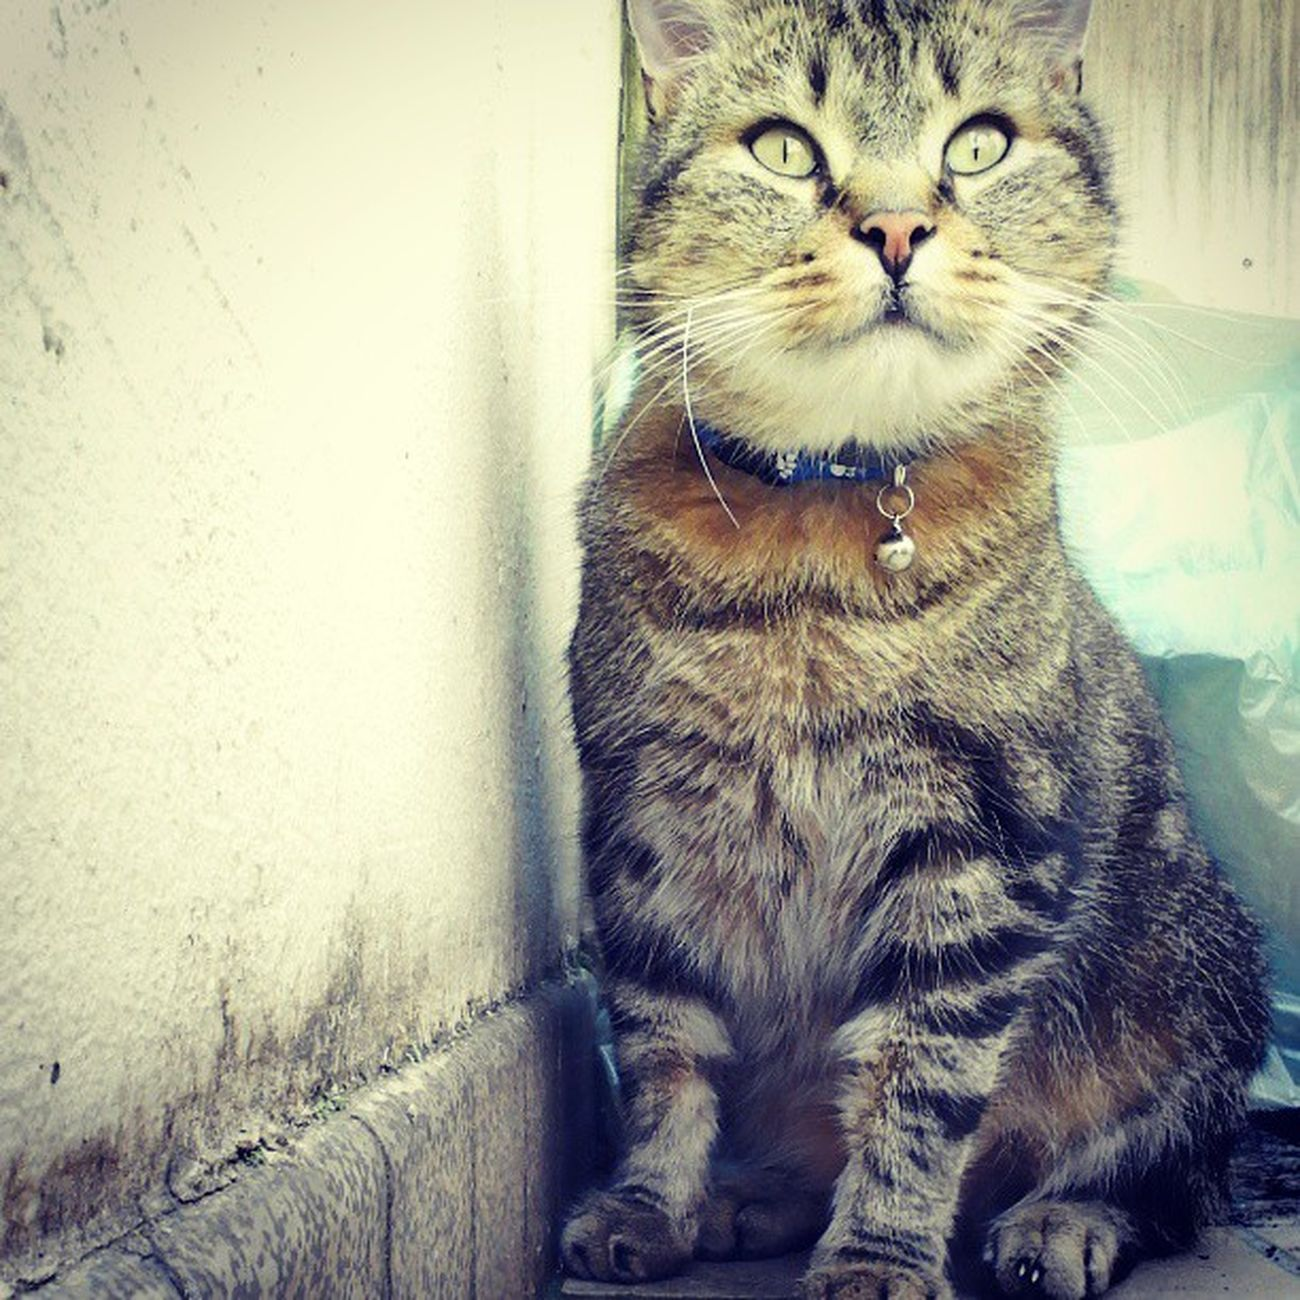 My baby Cats Love BIG Chieur tigre tiger little beautiful <3